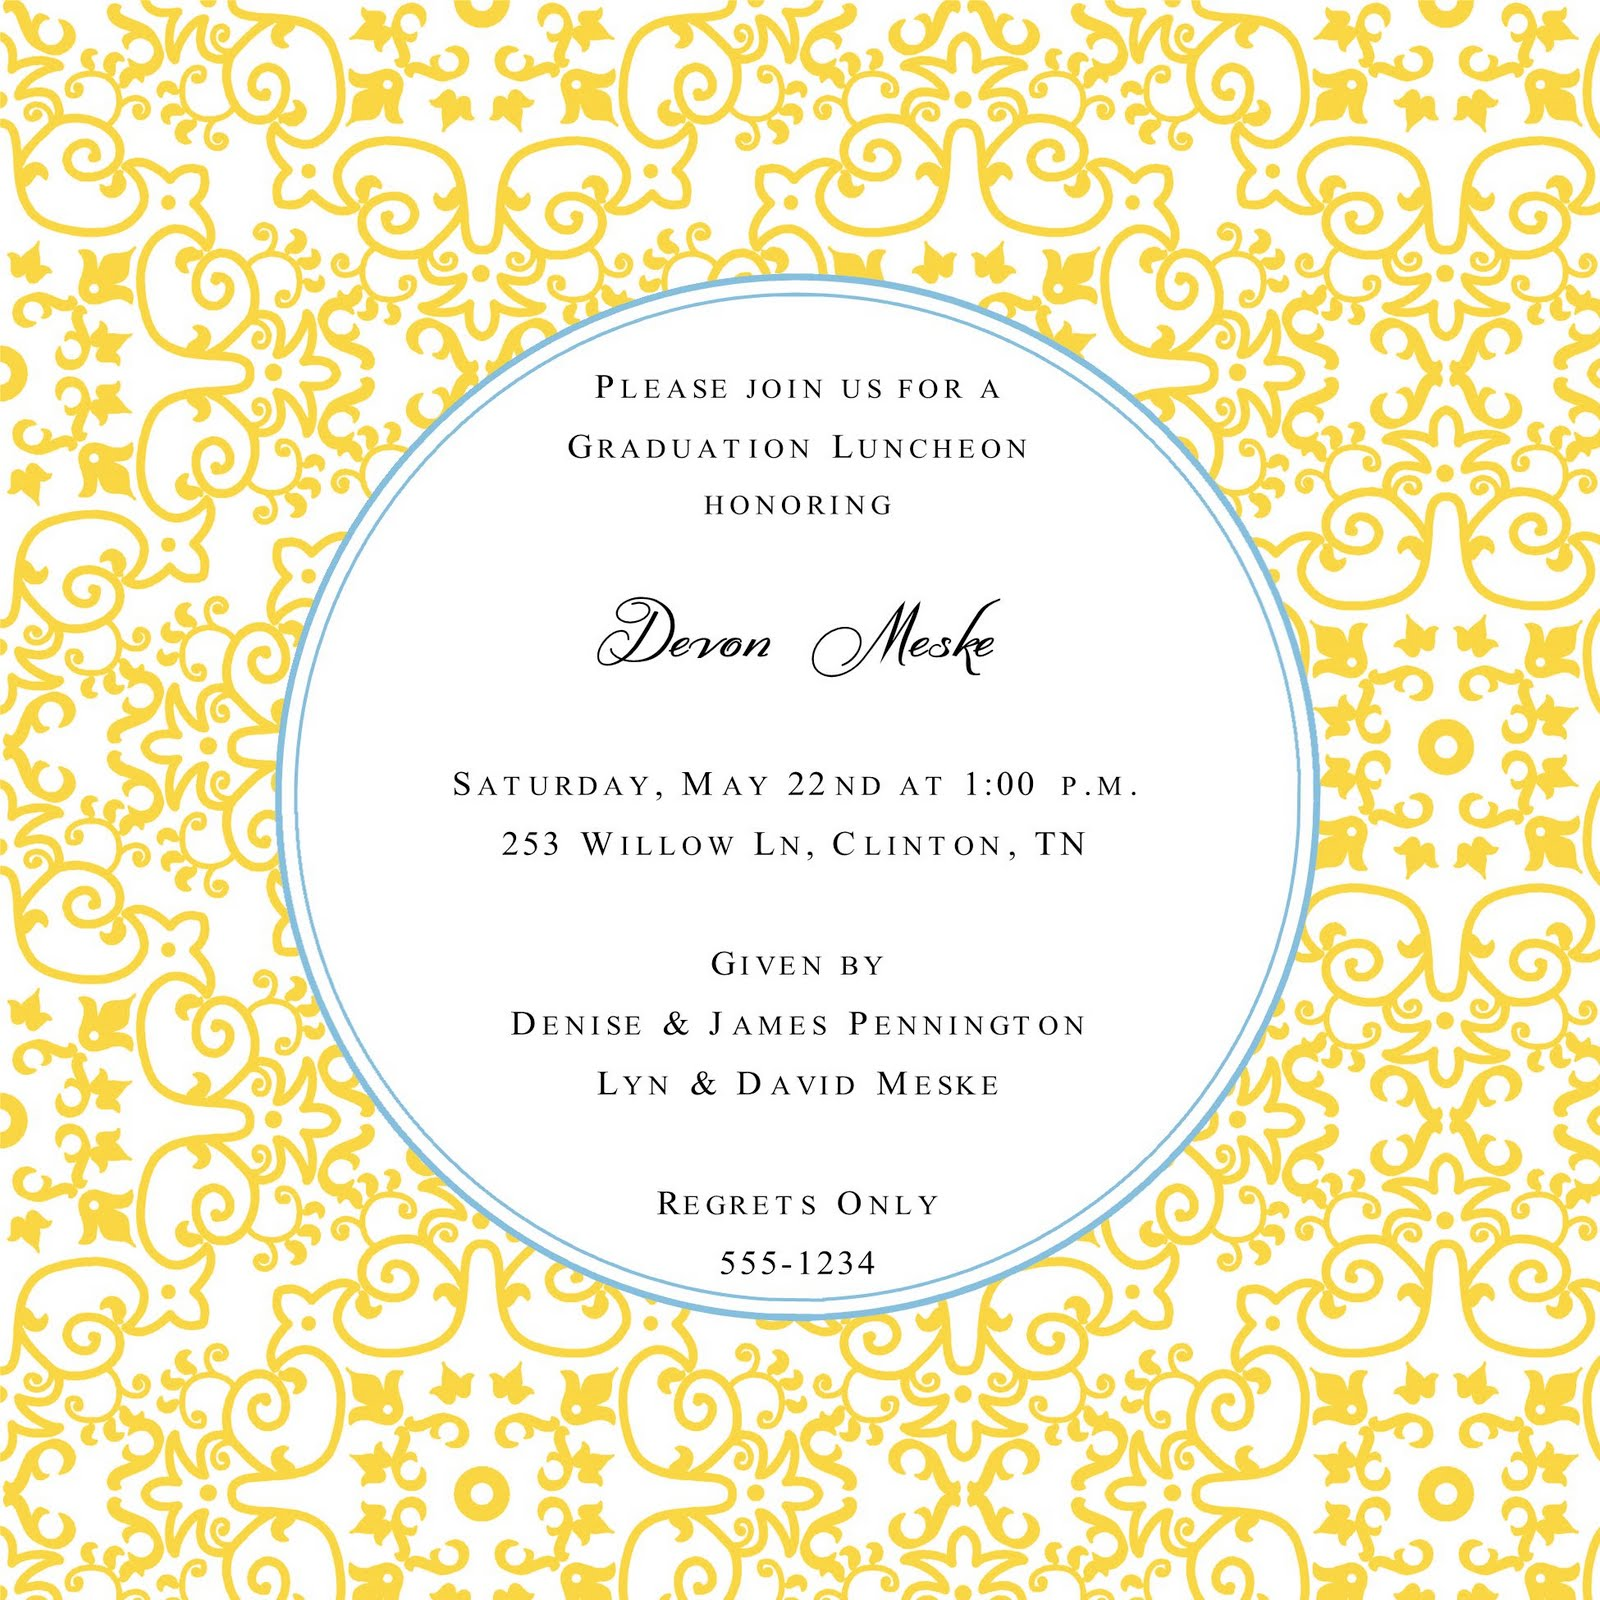 Wedding Party Dresses : Graduation Party Invitation Clipart With ... clip art royalty free library